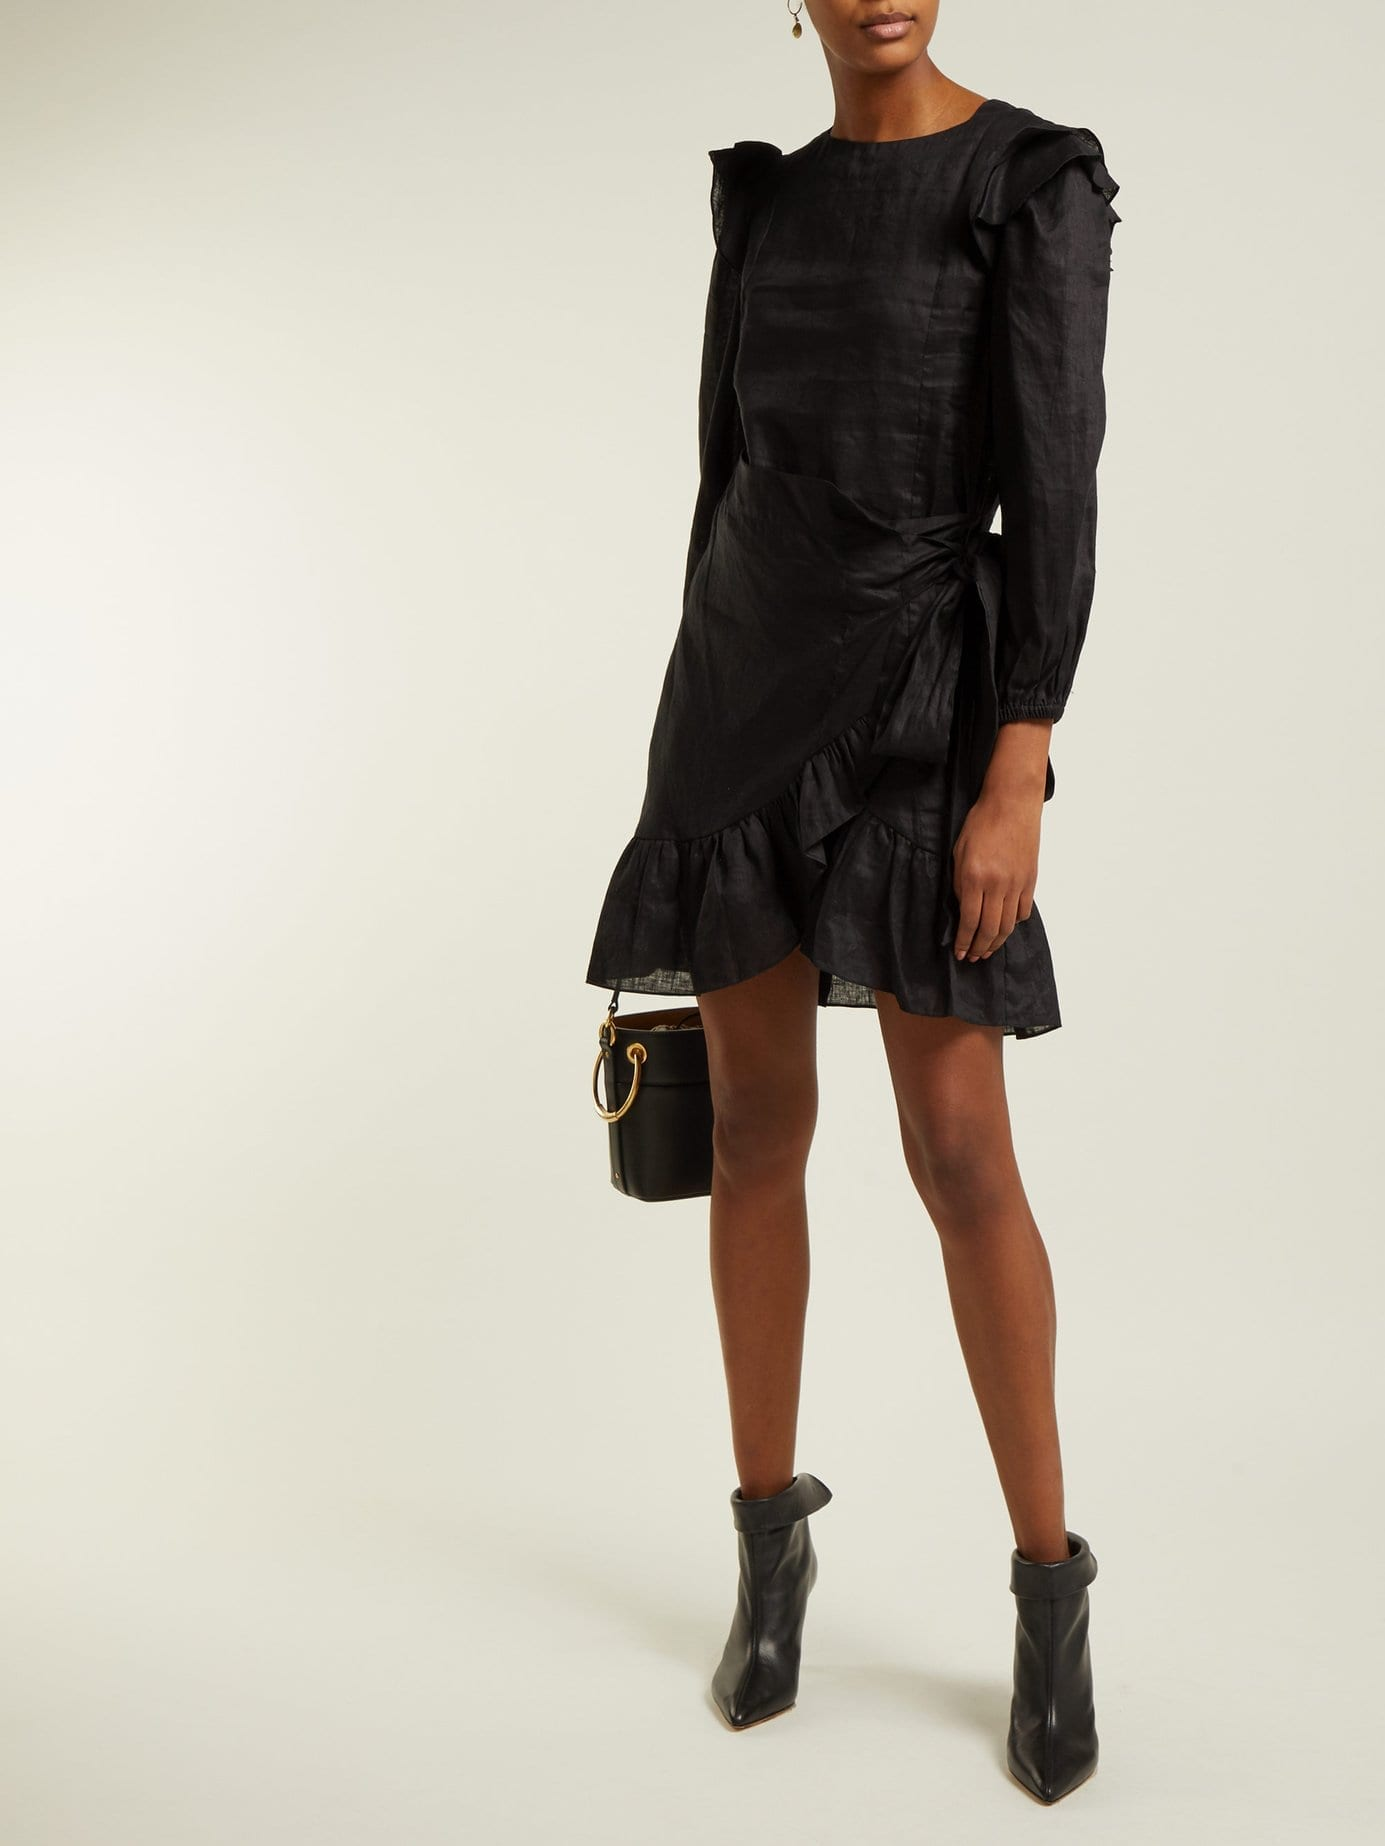 ISABEL MARANT ÉTOILE Telicia Ruffled Linen Mini Black Dress